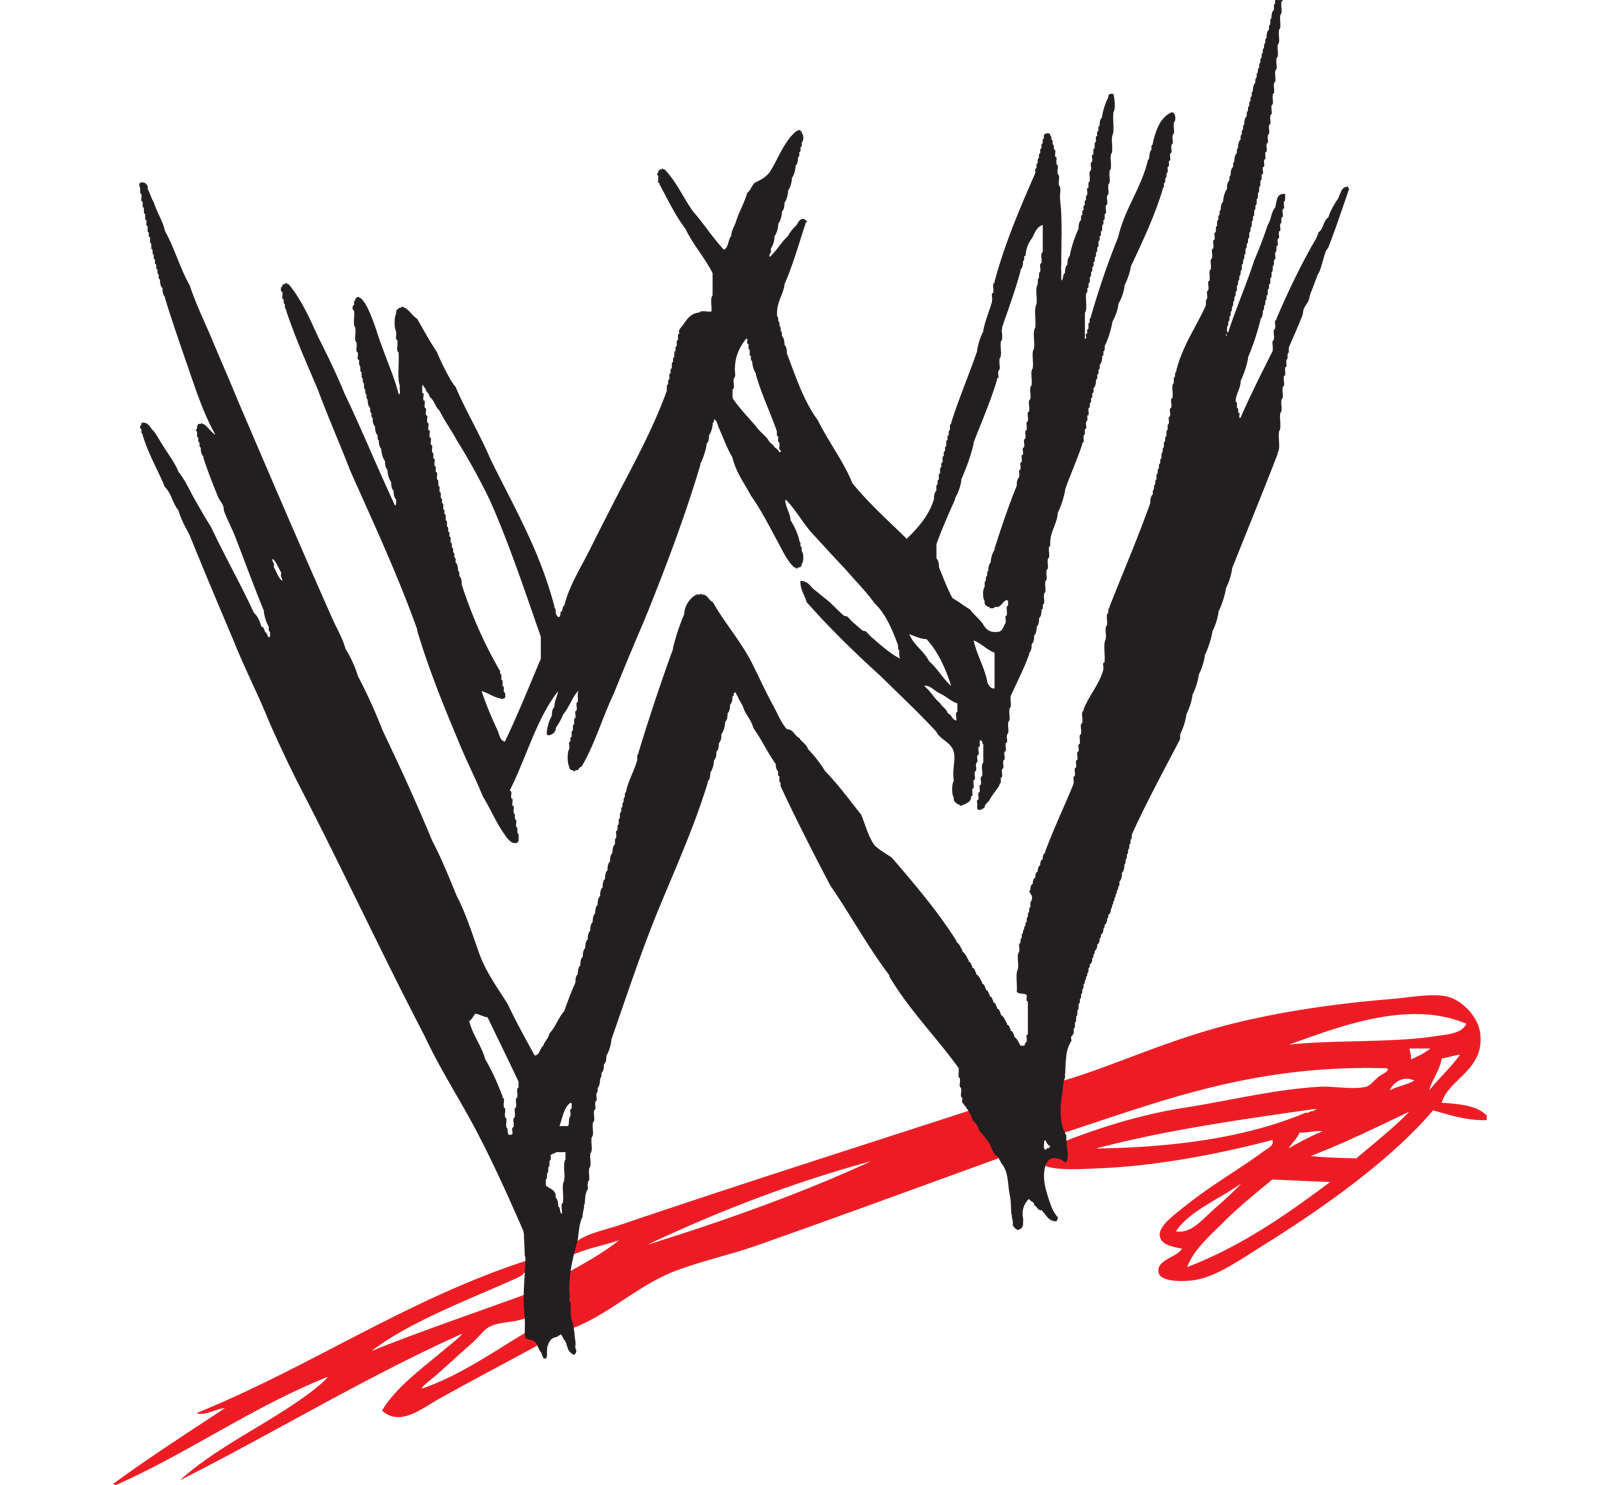 WWE Logo, WWE Symbol, Meaning, History and Evolution